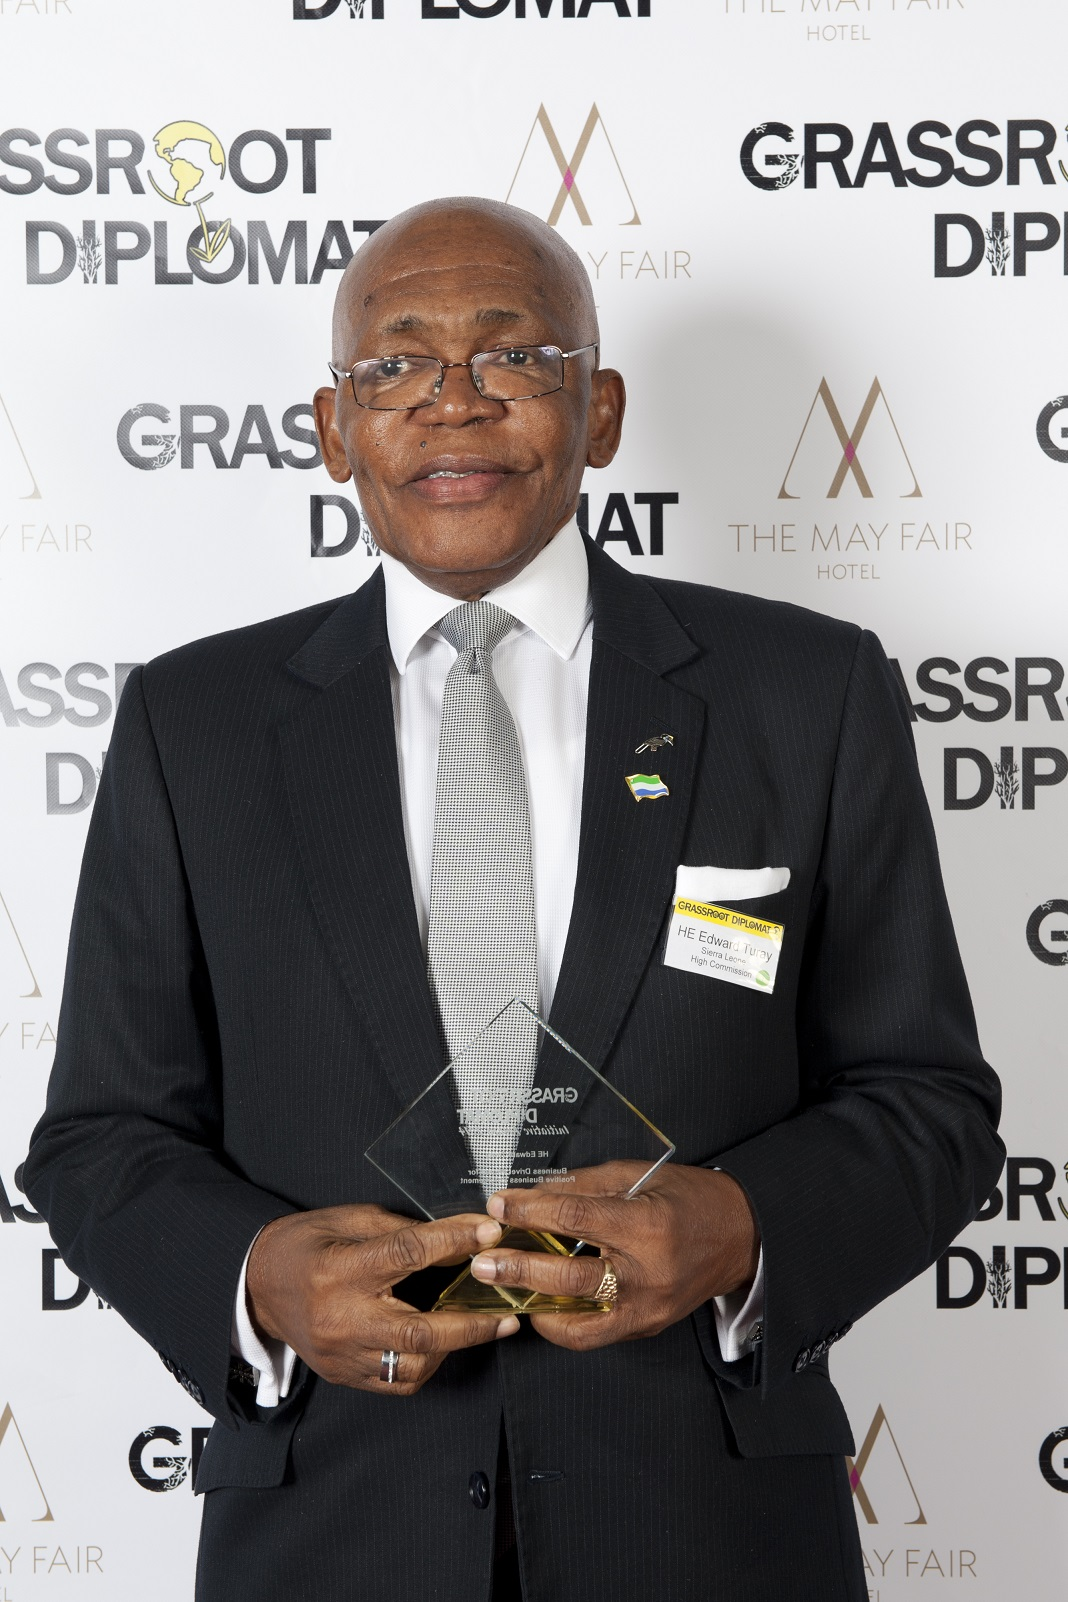 HE EDWARD TURAY - SIERRA LEONE HIGH COMMISSIONBUSINESS DRIVER WINNER: POSITIVE BUSINES ENFORCEMENT2014His Excellency Edward Turay of Sierra Leone has done remarkable work in galvanising diaspora communities across Europe, bringing better visibility to his country and people. With extremely stretched resources, the High Commissioner also heads diplomatic missions in Denmark, Norway, Sweden, Spain, Portugal, Cyprus and Ireland which he frequents to every two months. In the UK, the embassy manages a 100,000 people diaspora with 25,000 Sierra Leone civilians living in the London boroughs of Lambeth and Southwark alone.